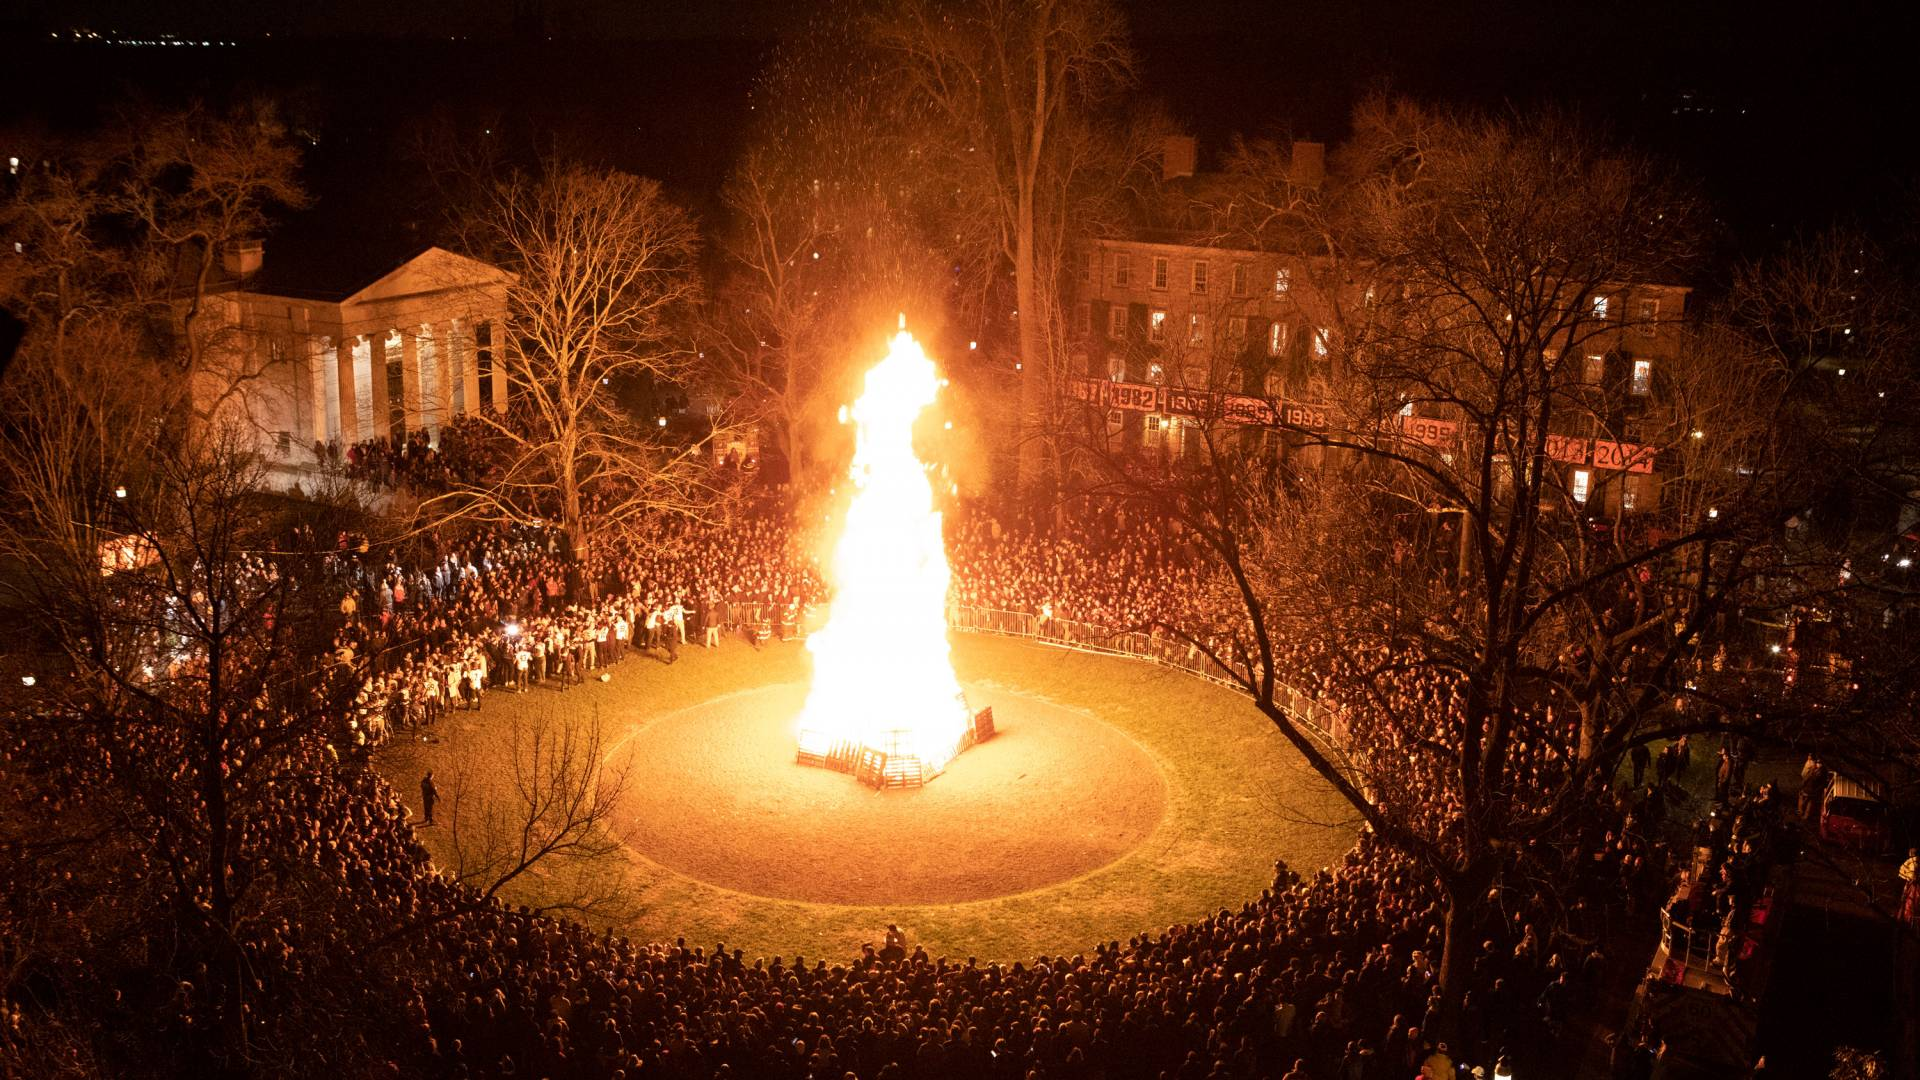 The bonfire from afar with thousands of students gathered around it